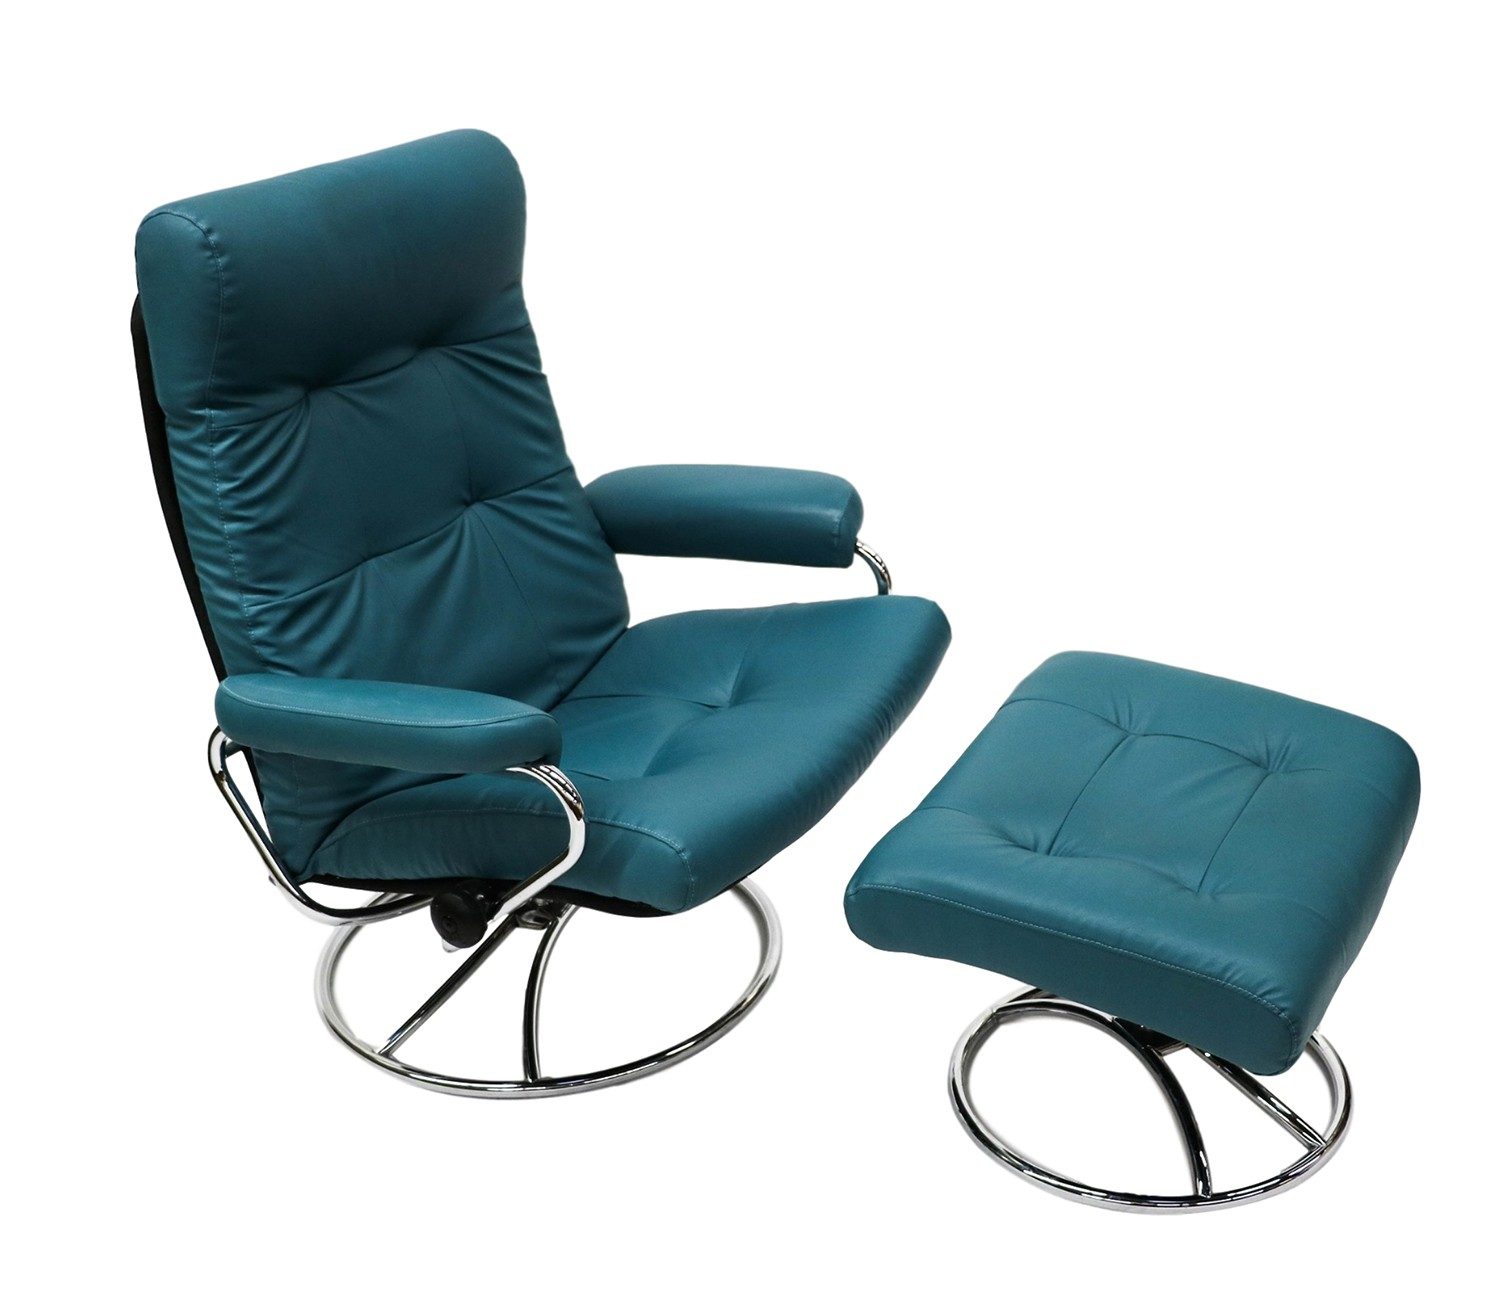 Ekornes Scandinavian Mid Century Reclining Lounge Chair